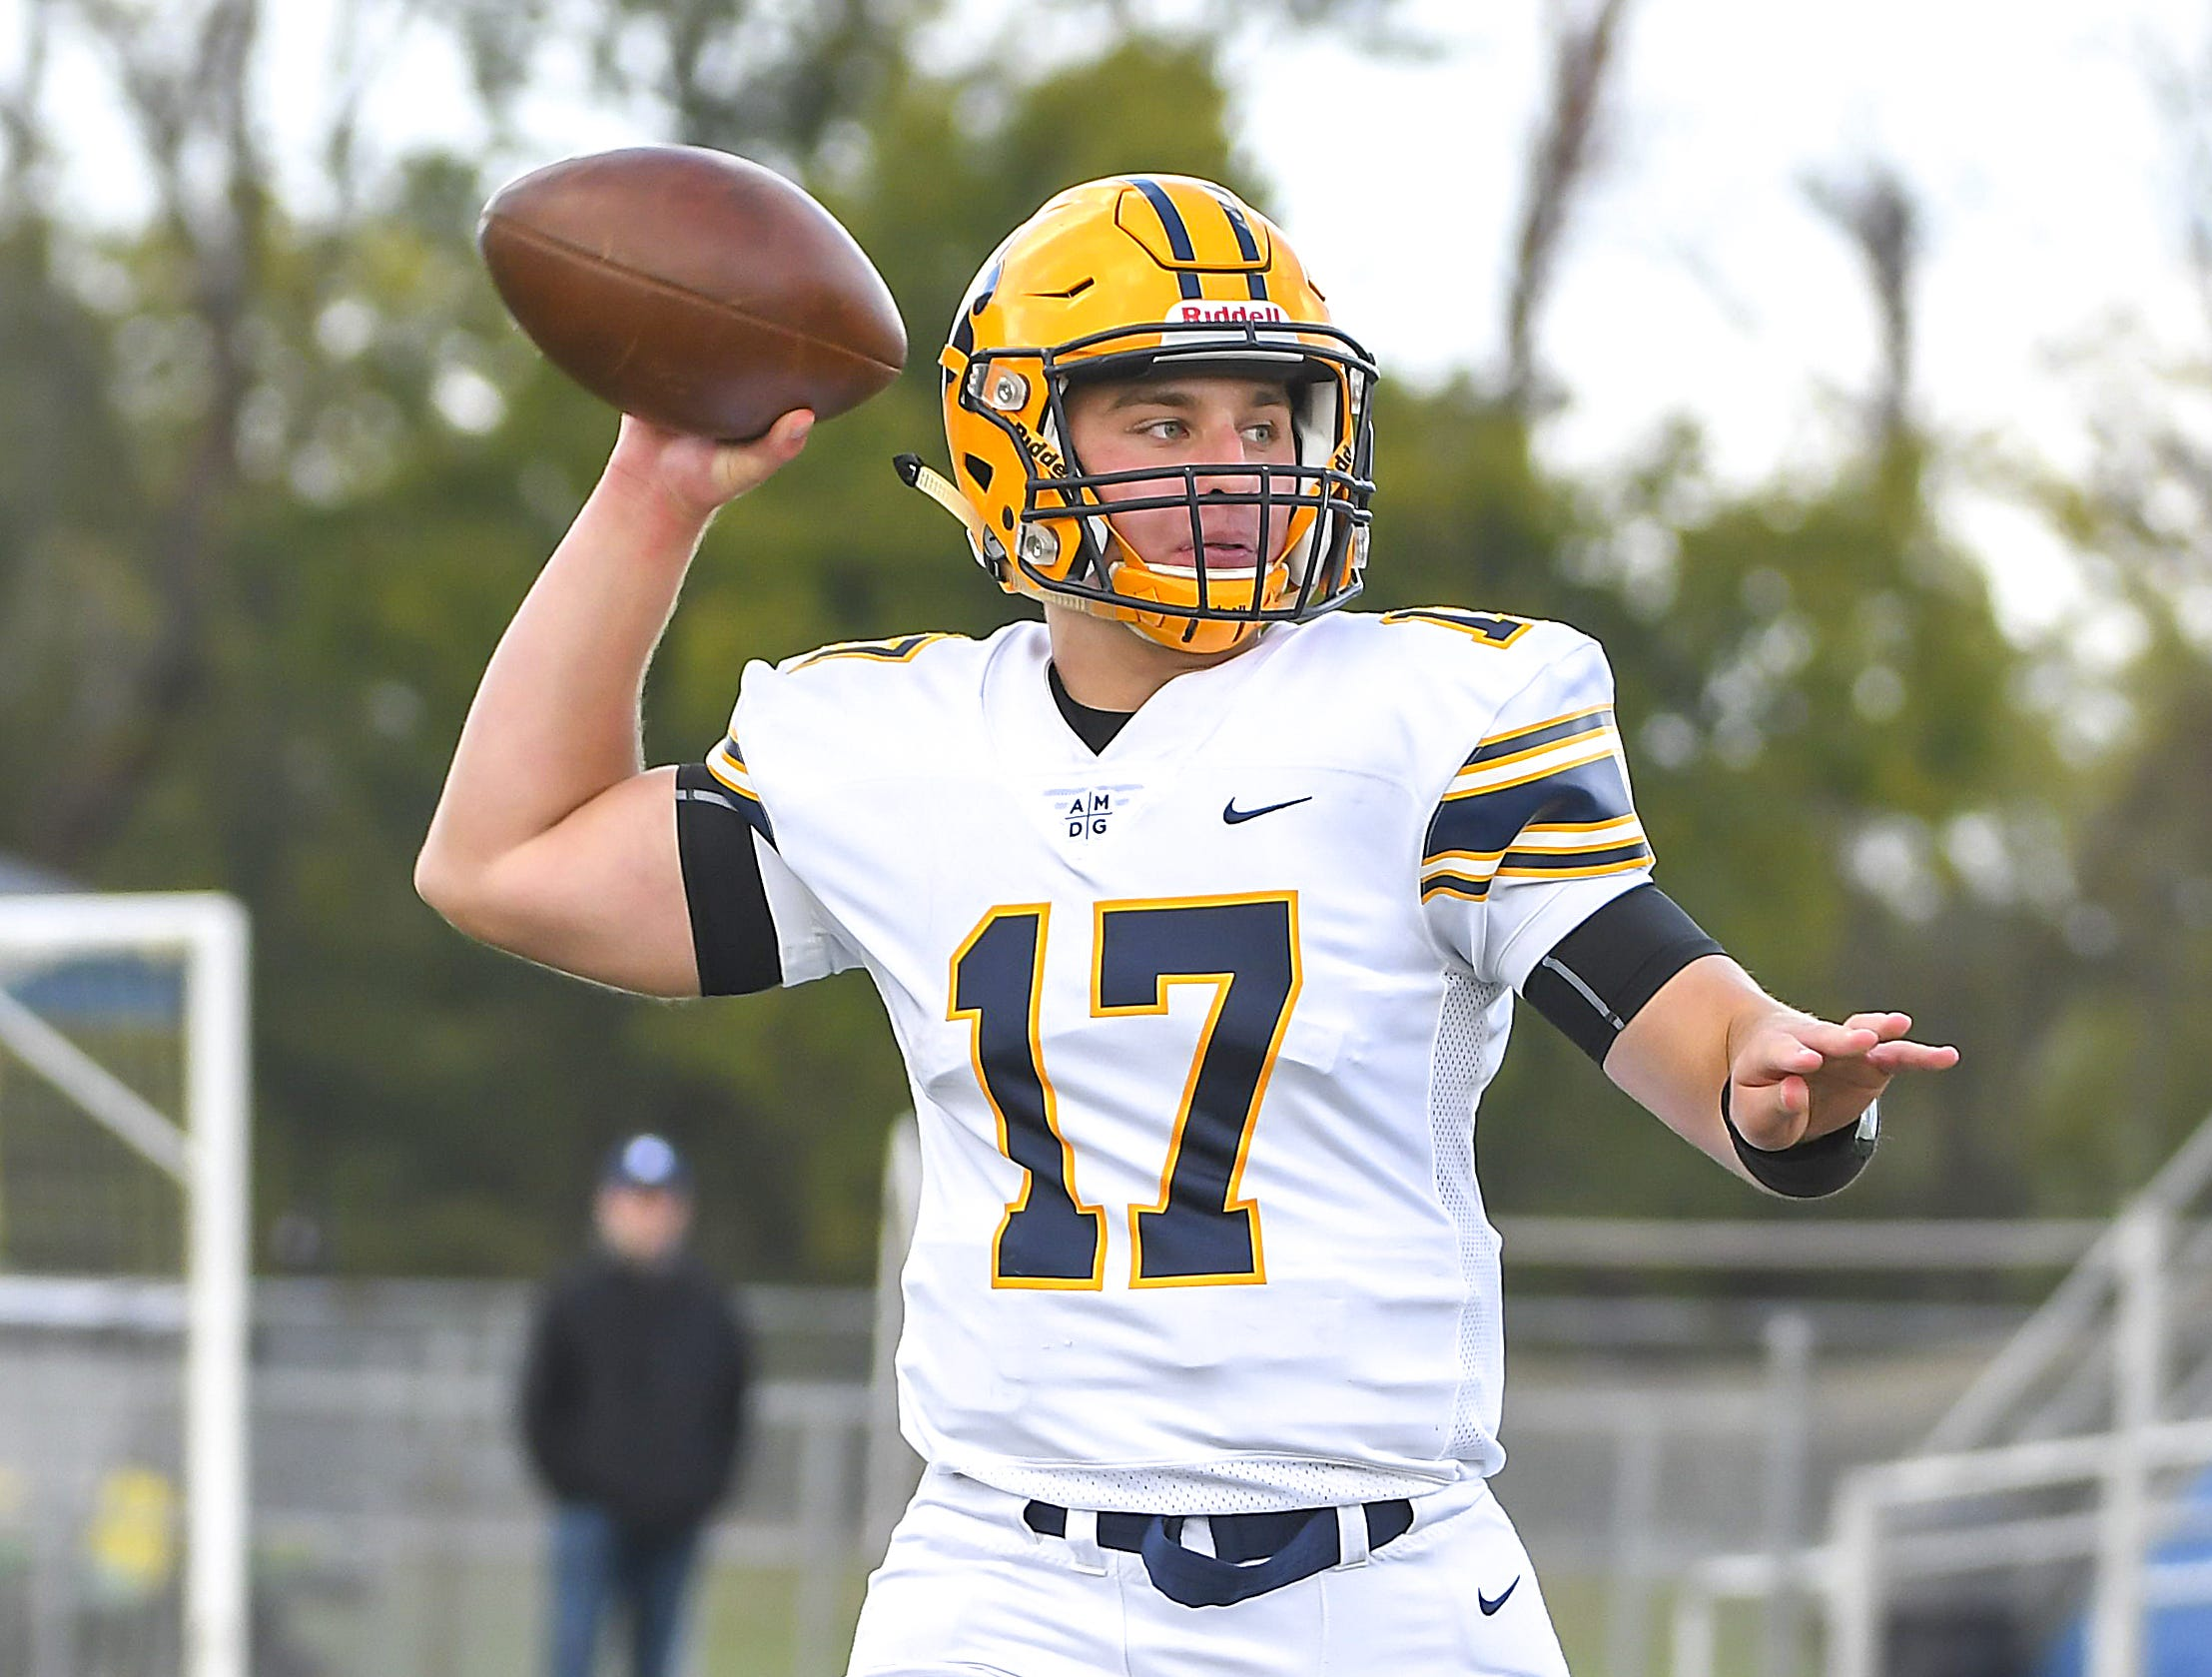 Cleveland St. Ignatius quarterback Patrick Delahunty passes the football for a touchdown against St. X at St. Xavier High School, Saturday, October, 20 2018